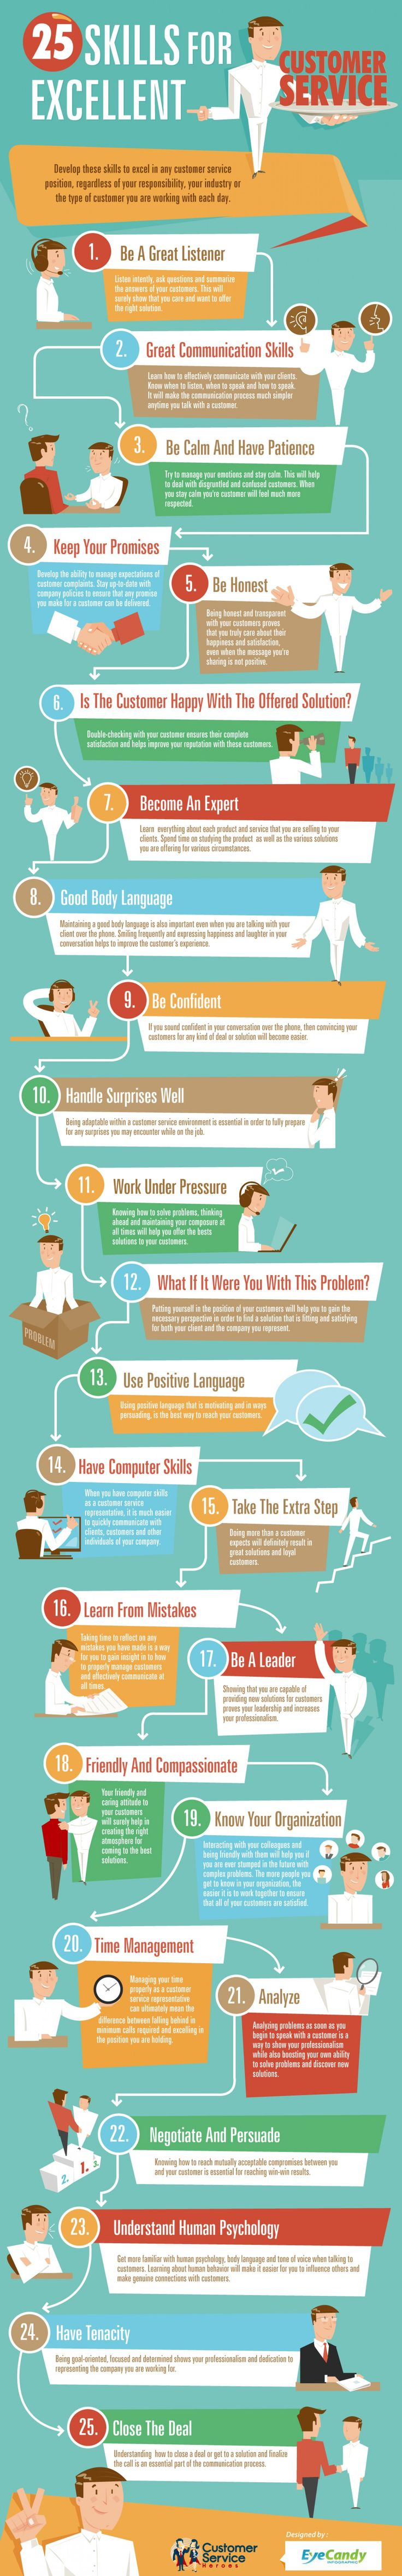 25 Things Your Competitors Can Teach You About Customer Service